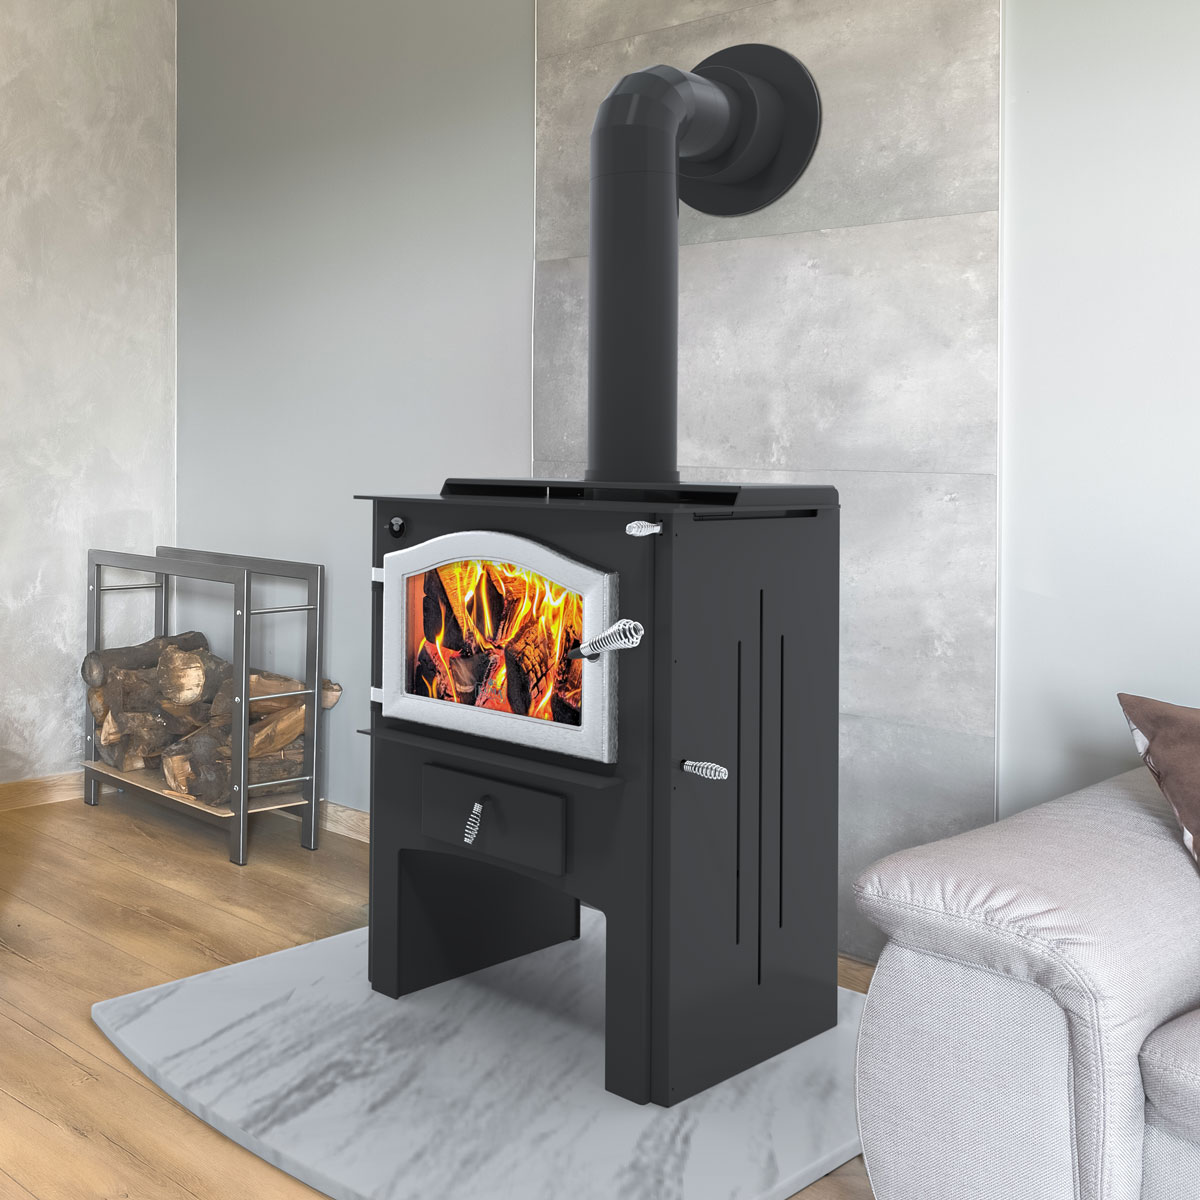 Kuma Aberdeen LE wood stove, made in the USA